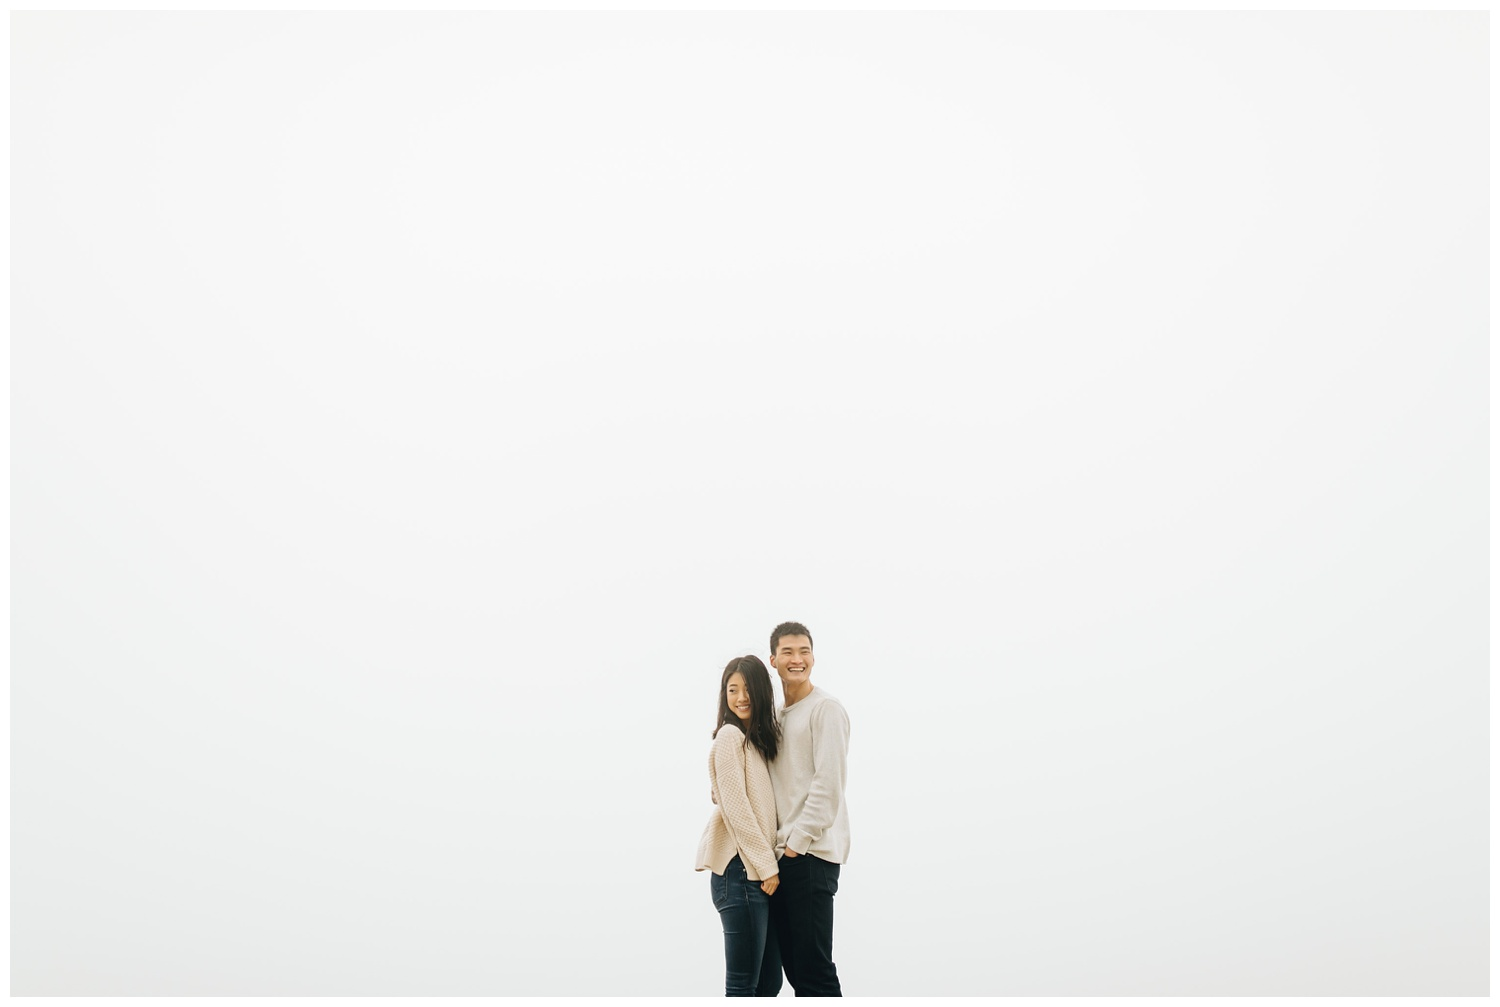 Los Angeles Forest Warm and Artistic Engagement Session-9632.jpg